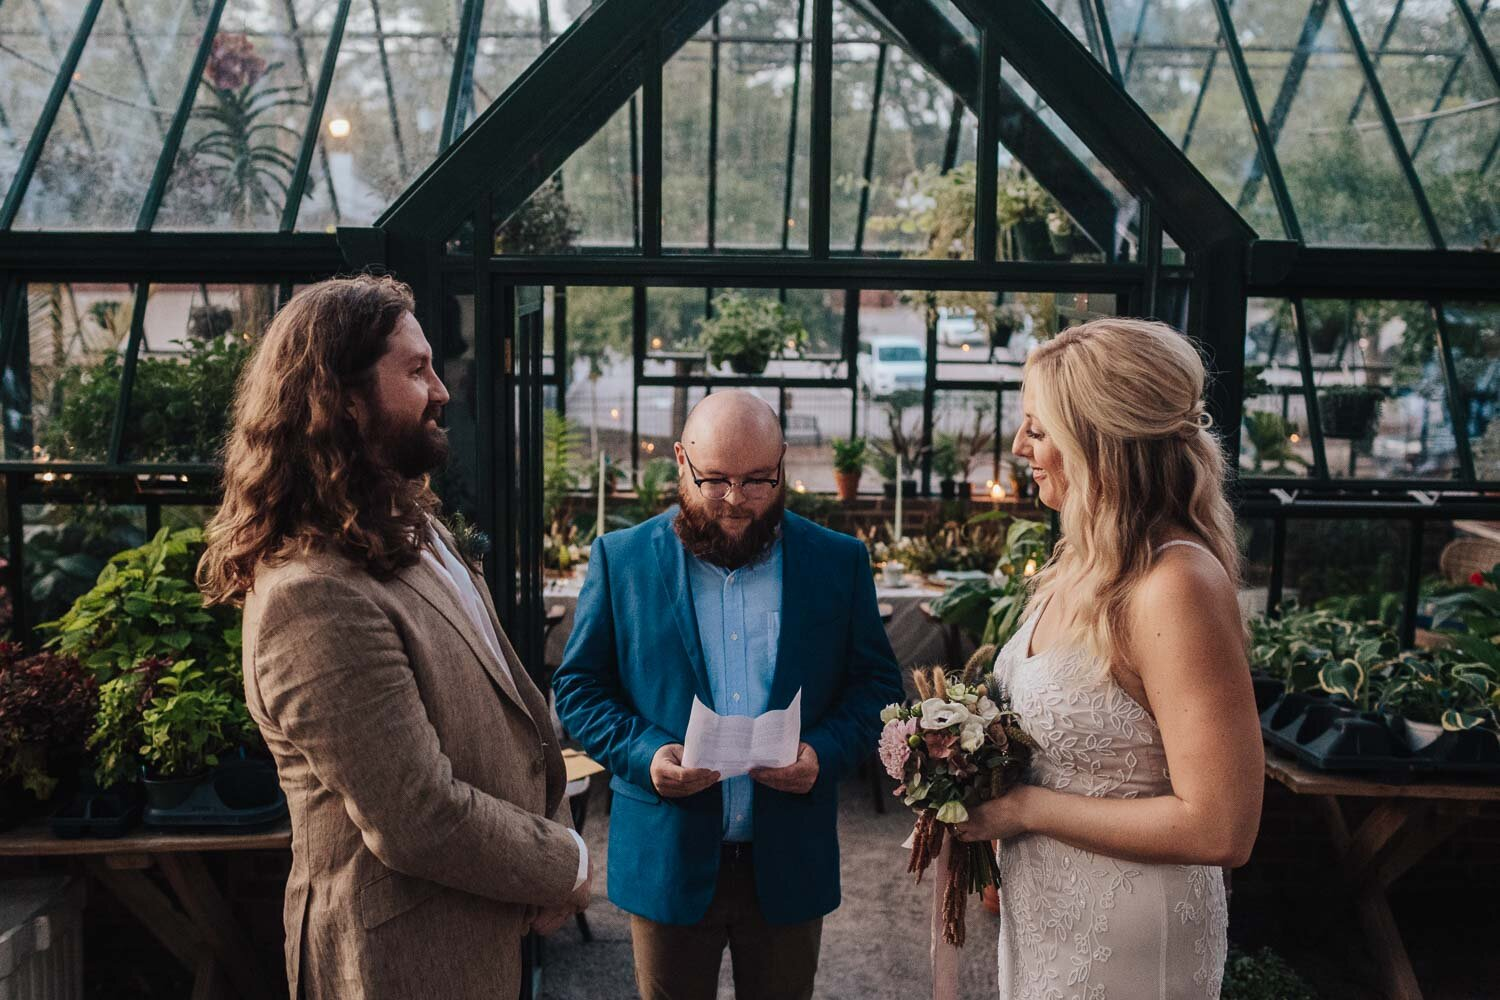 Birmingham Alabama Wedding Photography at SHOPPE by David A. Smith of DSmithImages Wedding Photography, Portraits, and Events